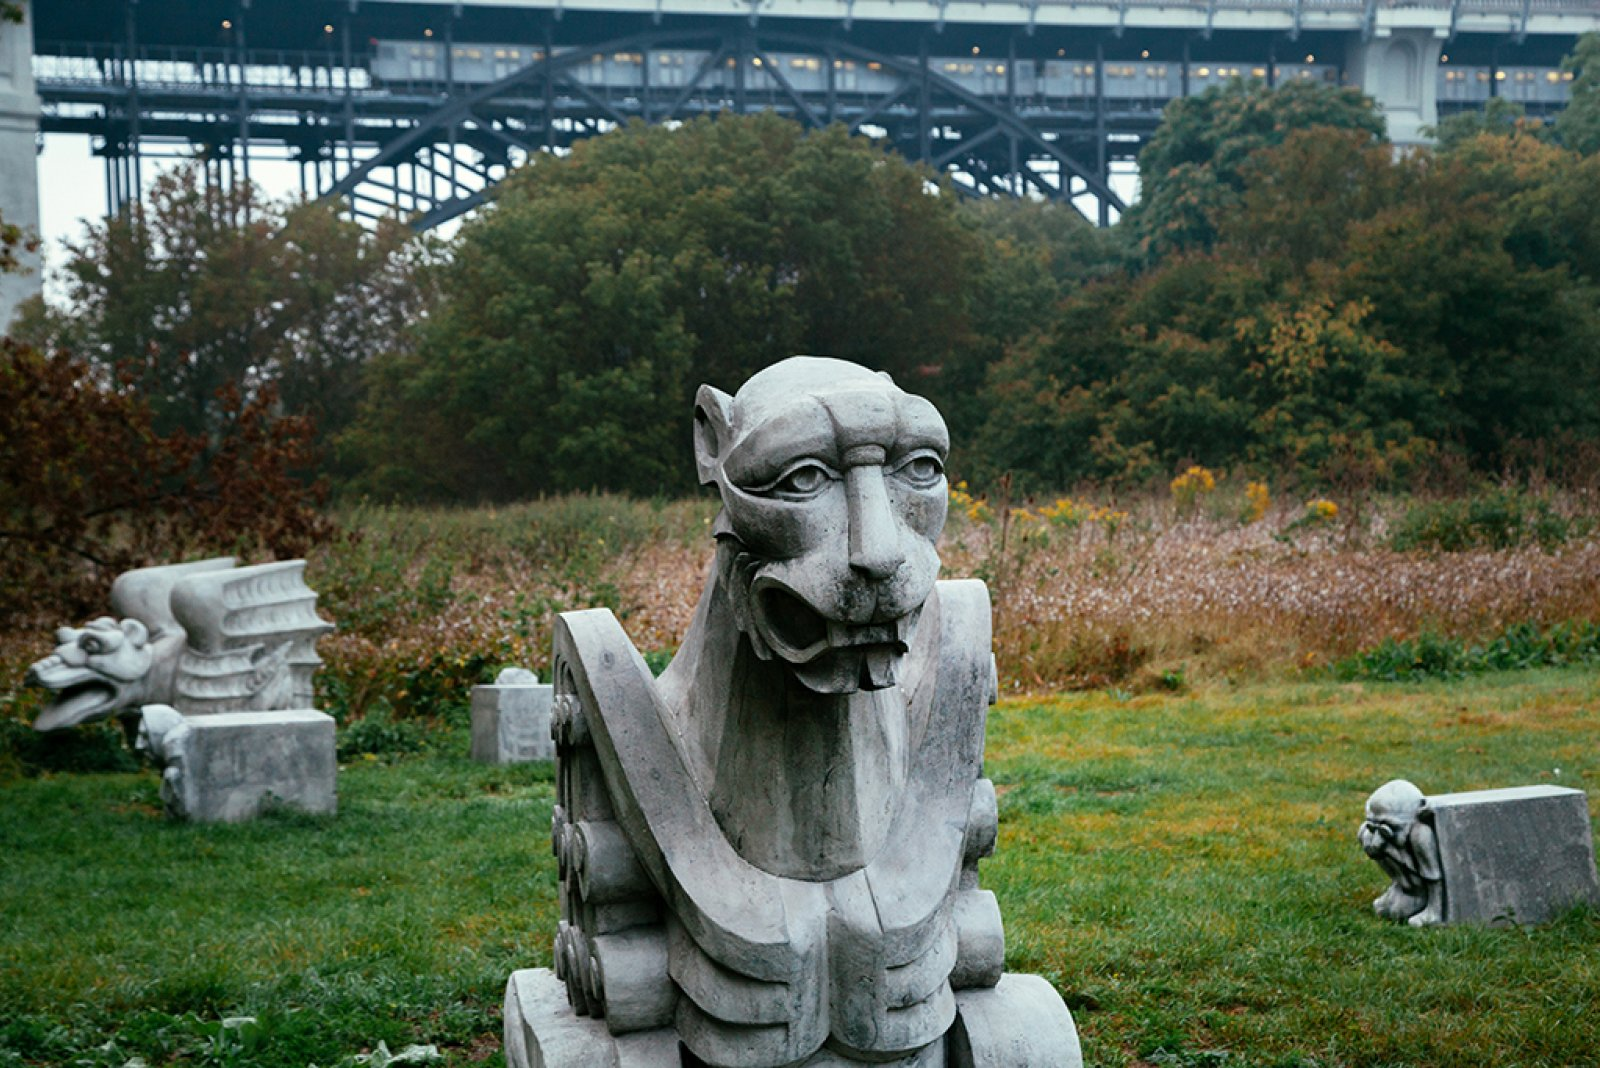 Duane Linklater, Monsters for Beauty, Permanence and Individuality, 2017, 14 cast concrete sculptures, dimensions variable. Installation view, Lower Don River Trail, Don River Valley Park, Toronto, 2017